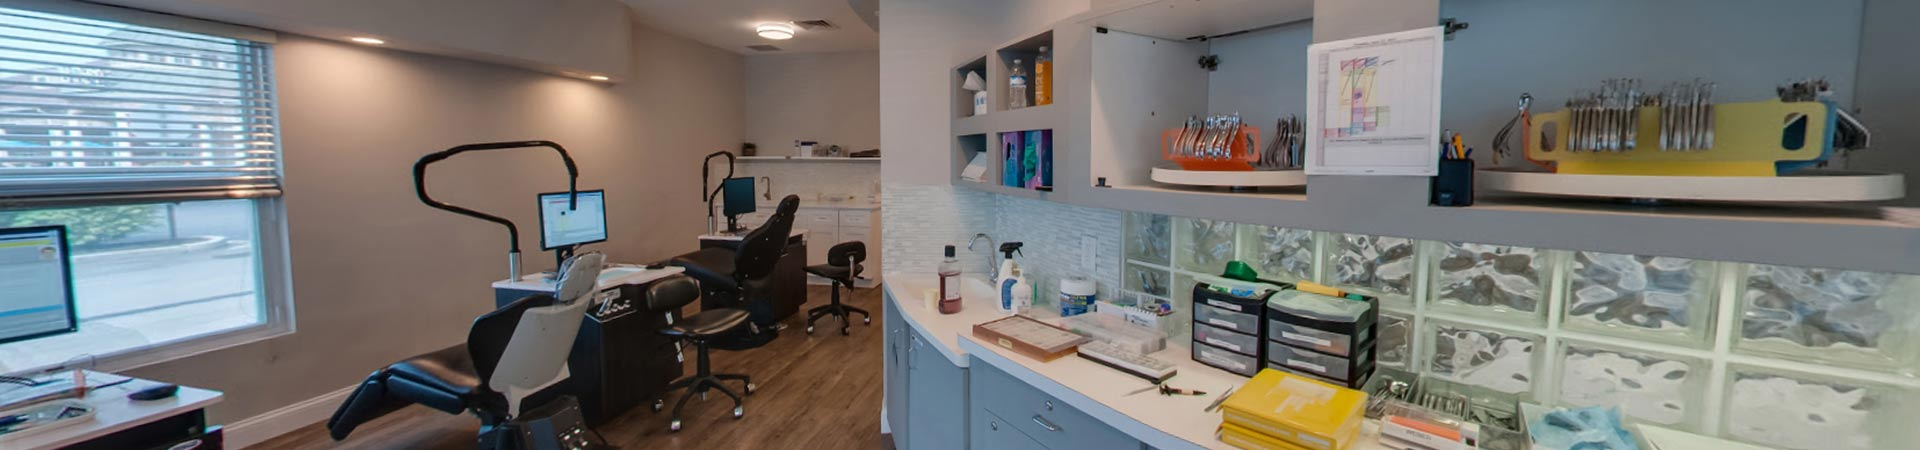 Patient Stations at Northeast Orthodontic Specialists in Loveland Cincinnati OH